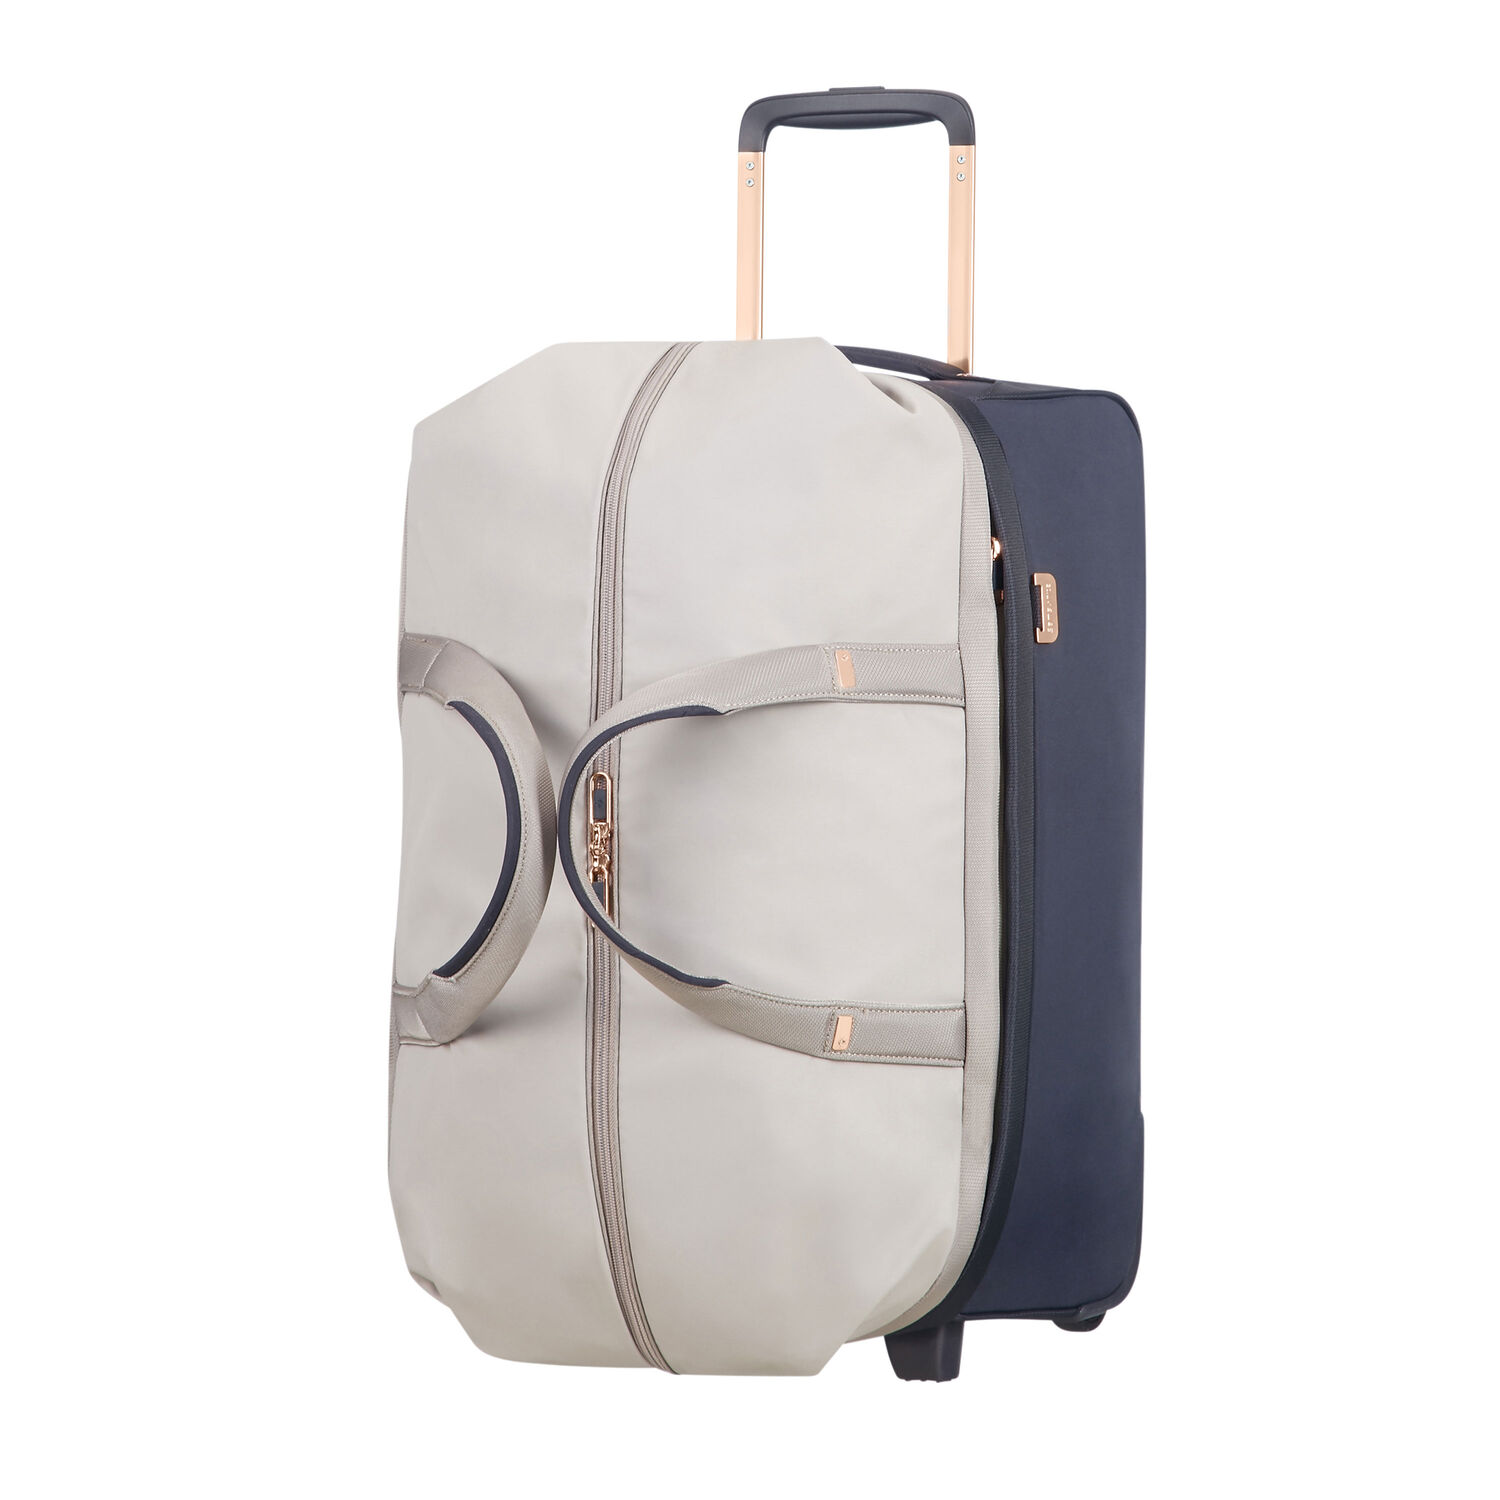 "Samsonite Uplite 20"" Wheeled Duffle in the color Pearl/Blue."